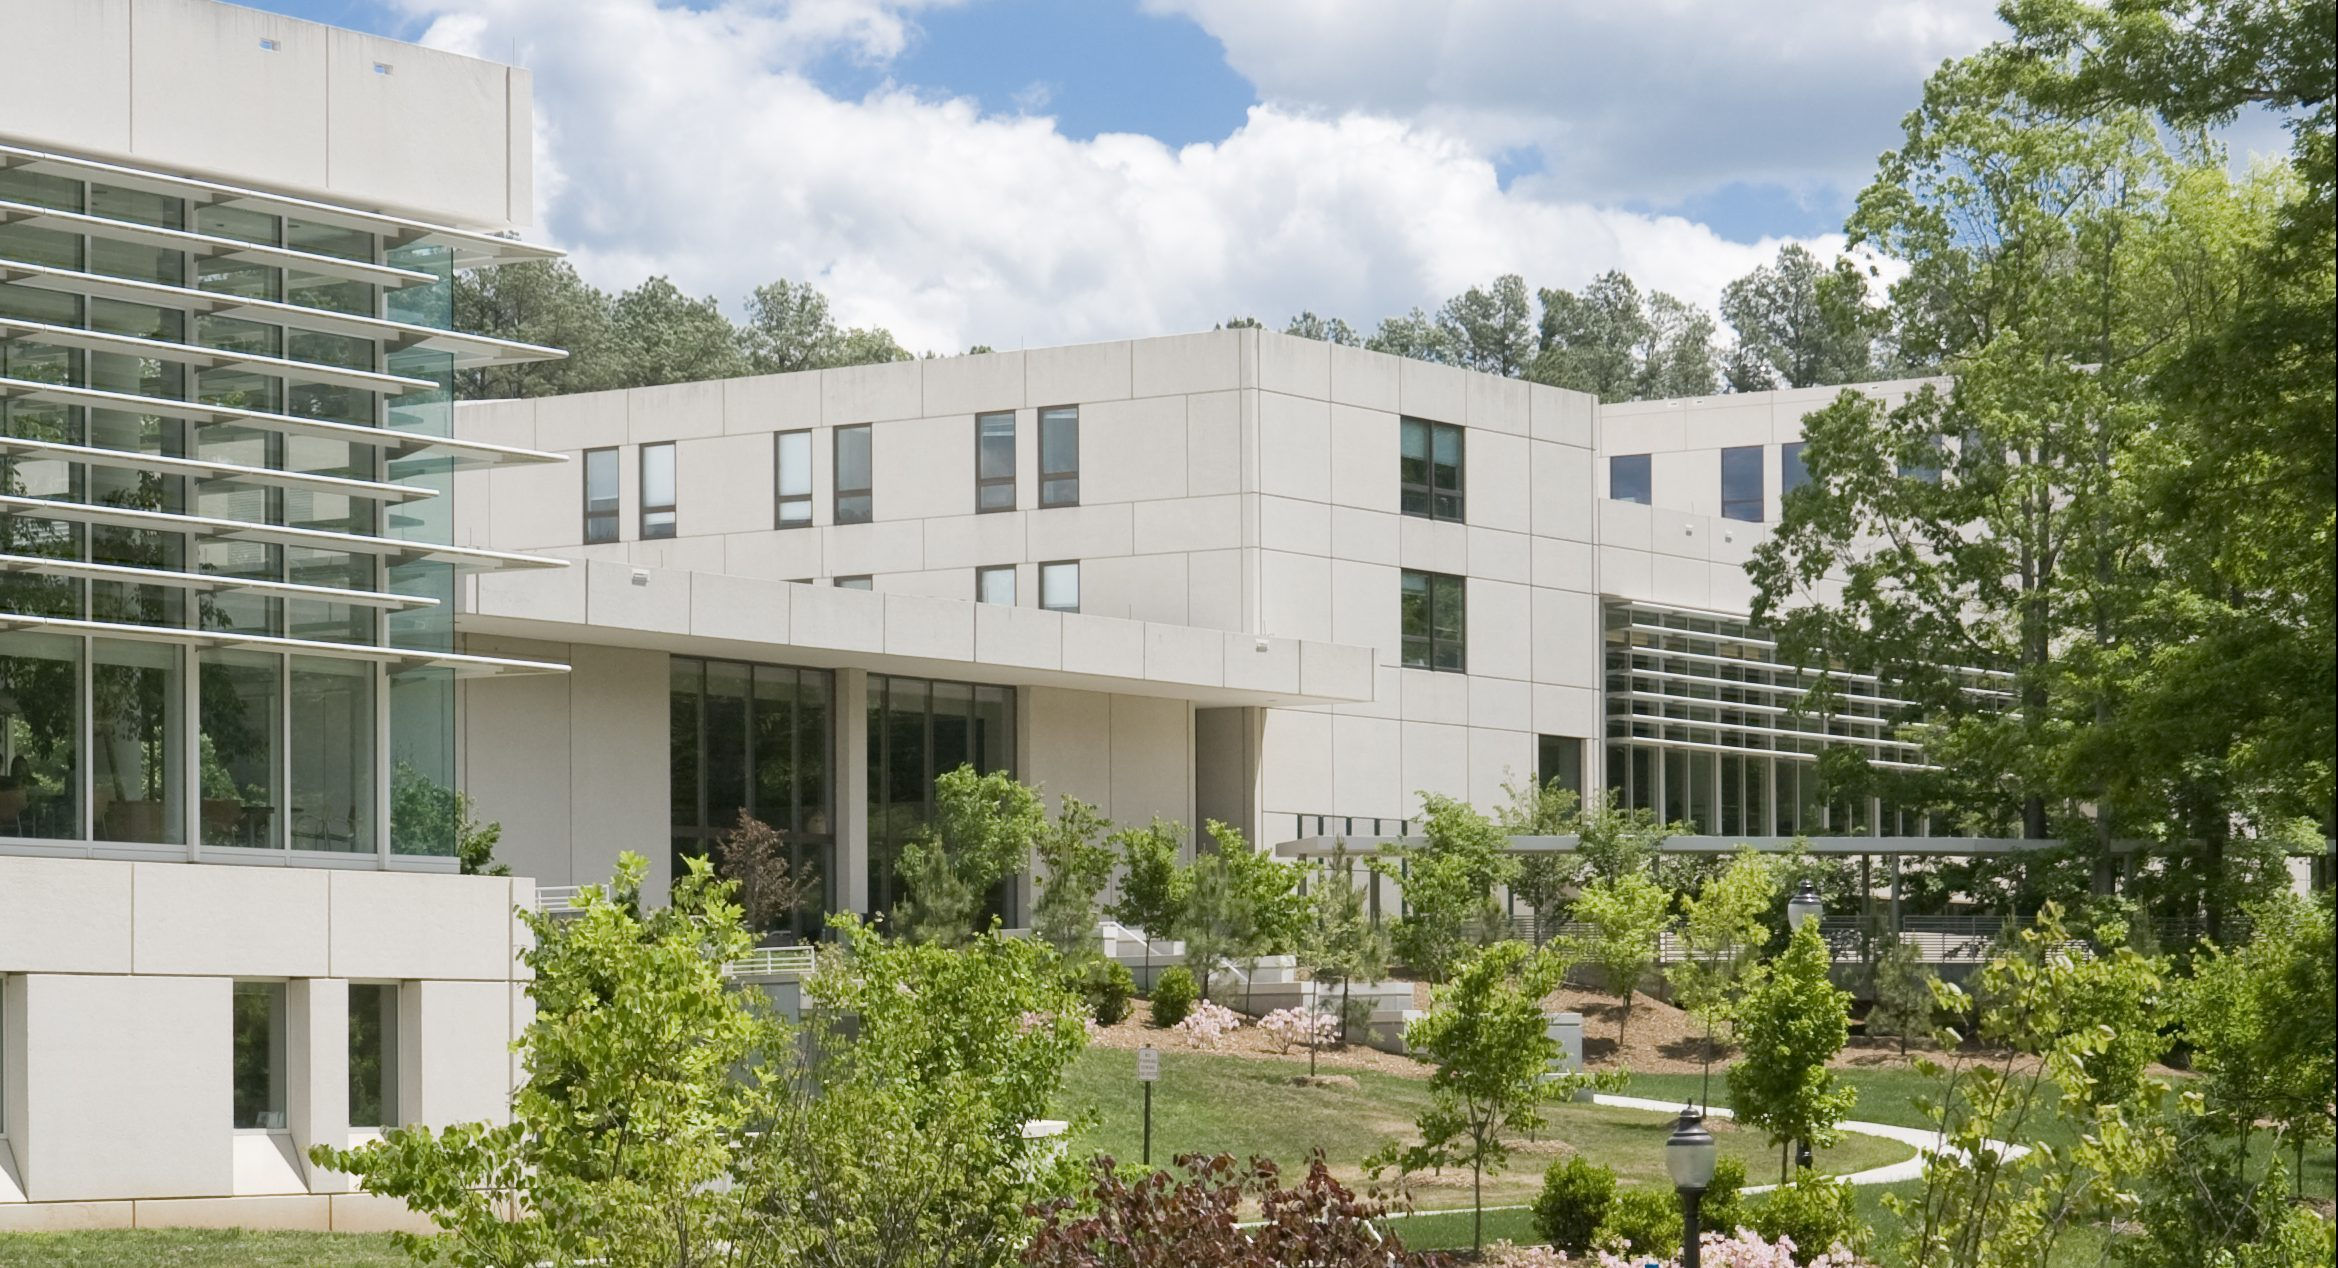 Fuqua School of Business in Spring